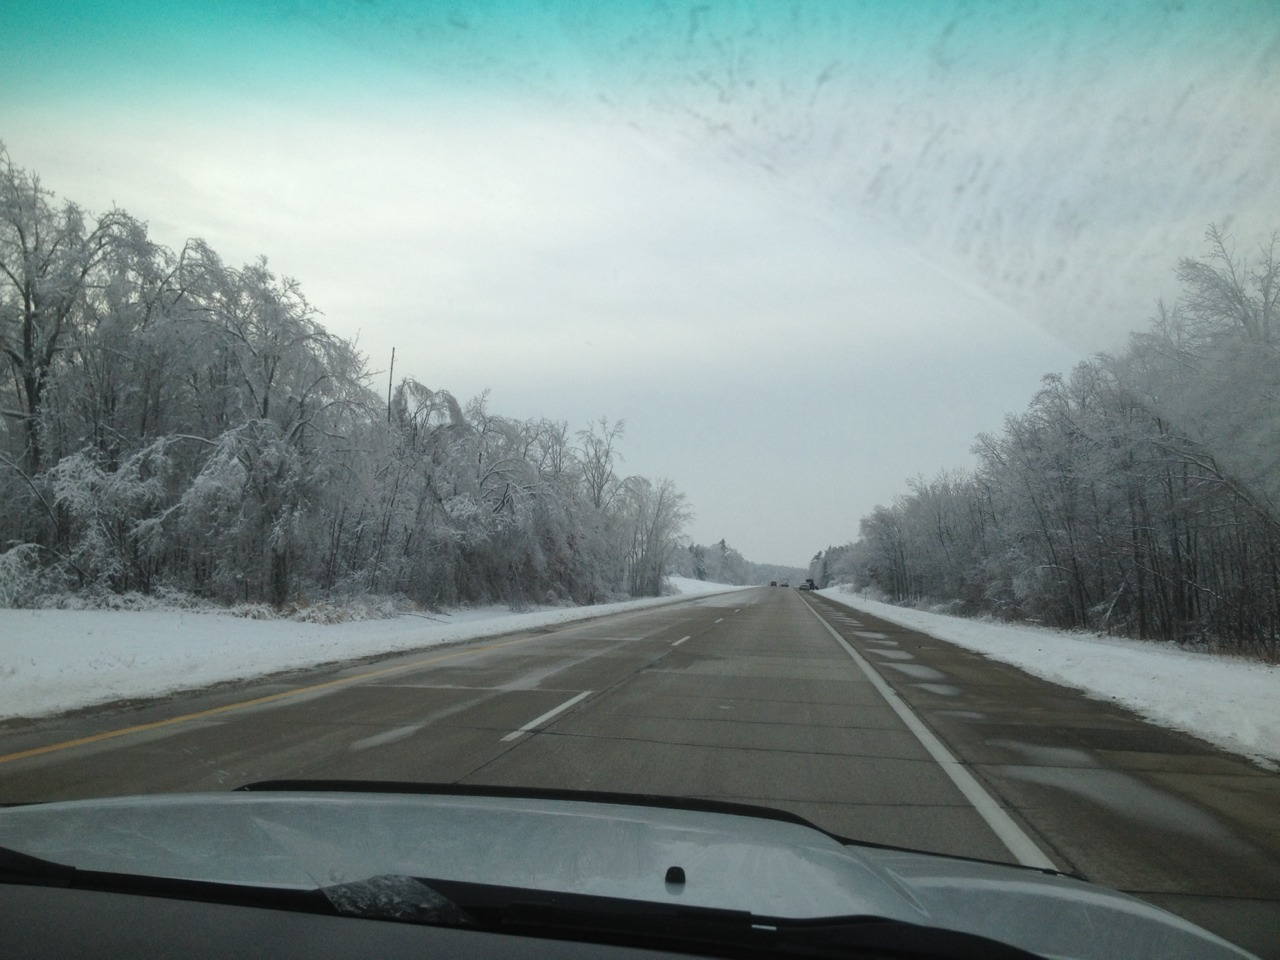 We drove through ice-encrusted Michigan on day one of our journey from Ontario to the Yukon.